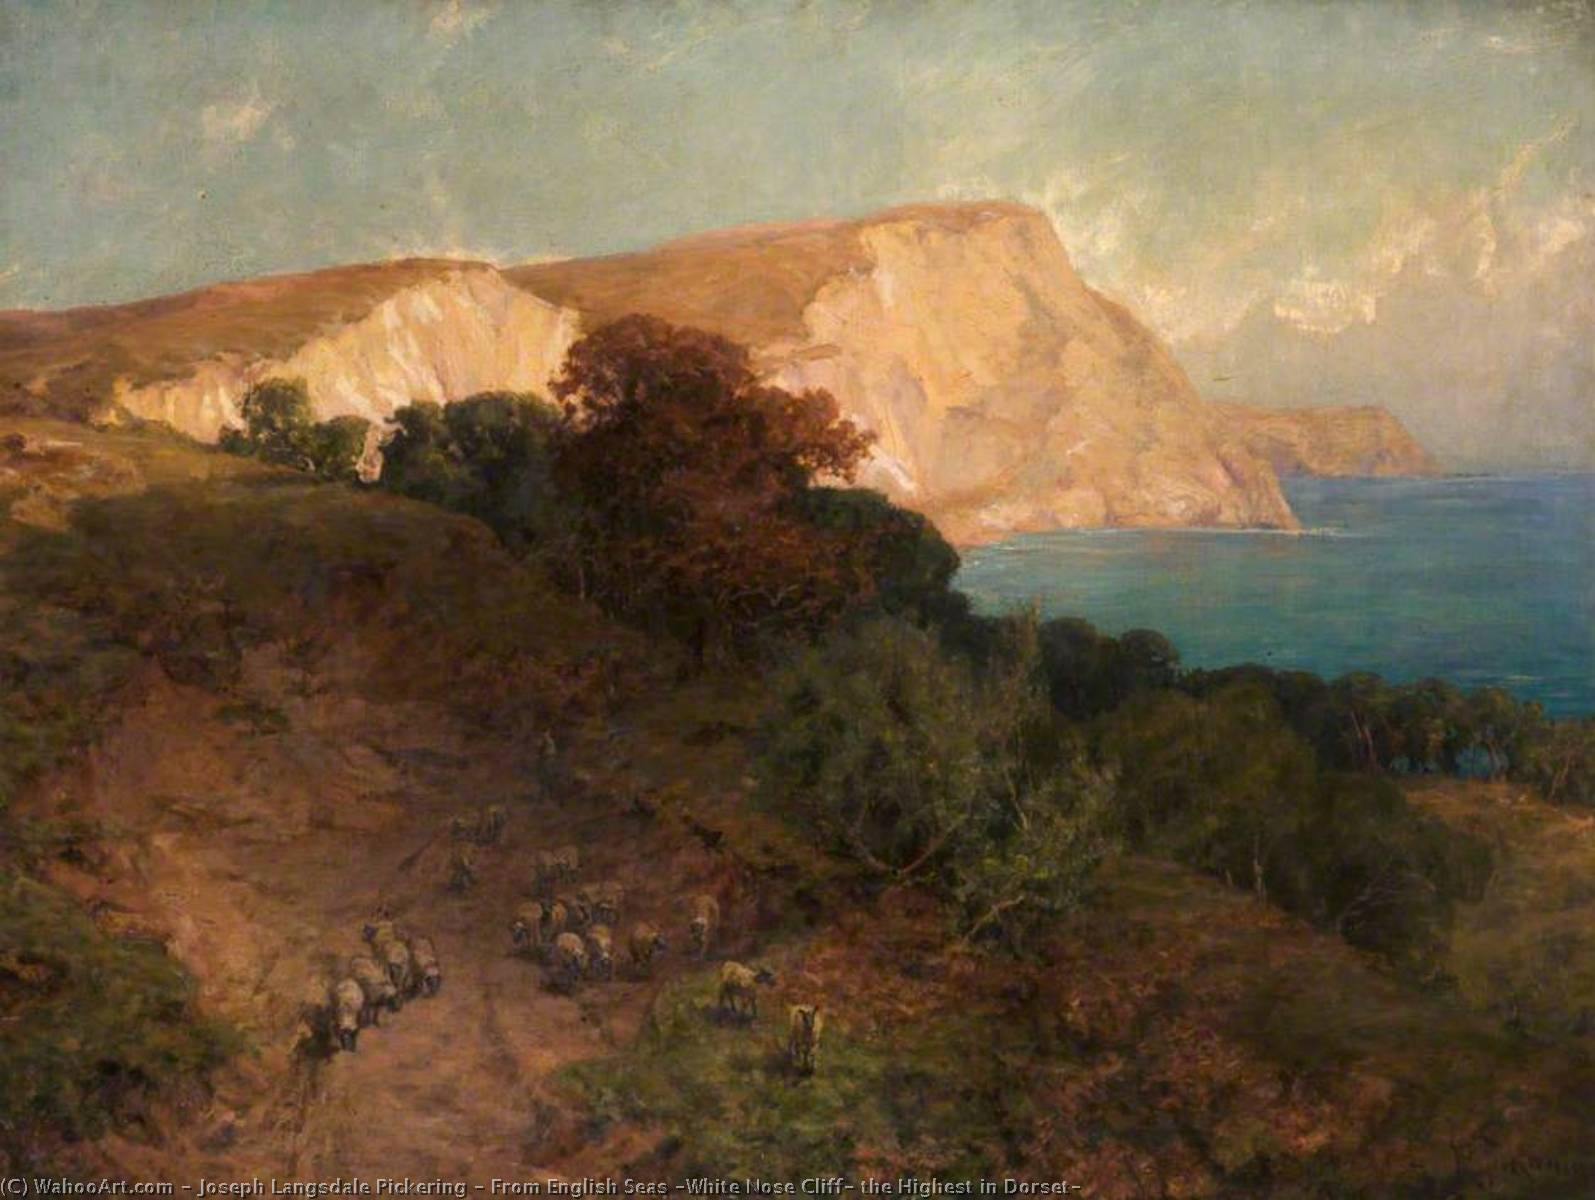 From English Seas (White Nose Cliff, the Highest in Dorset), Oil On Canvas by Joseph Langsdale Pickering